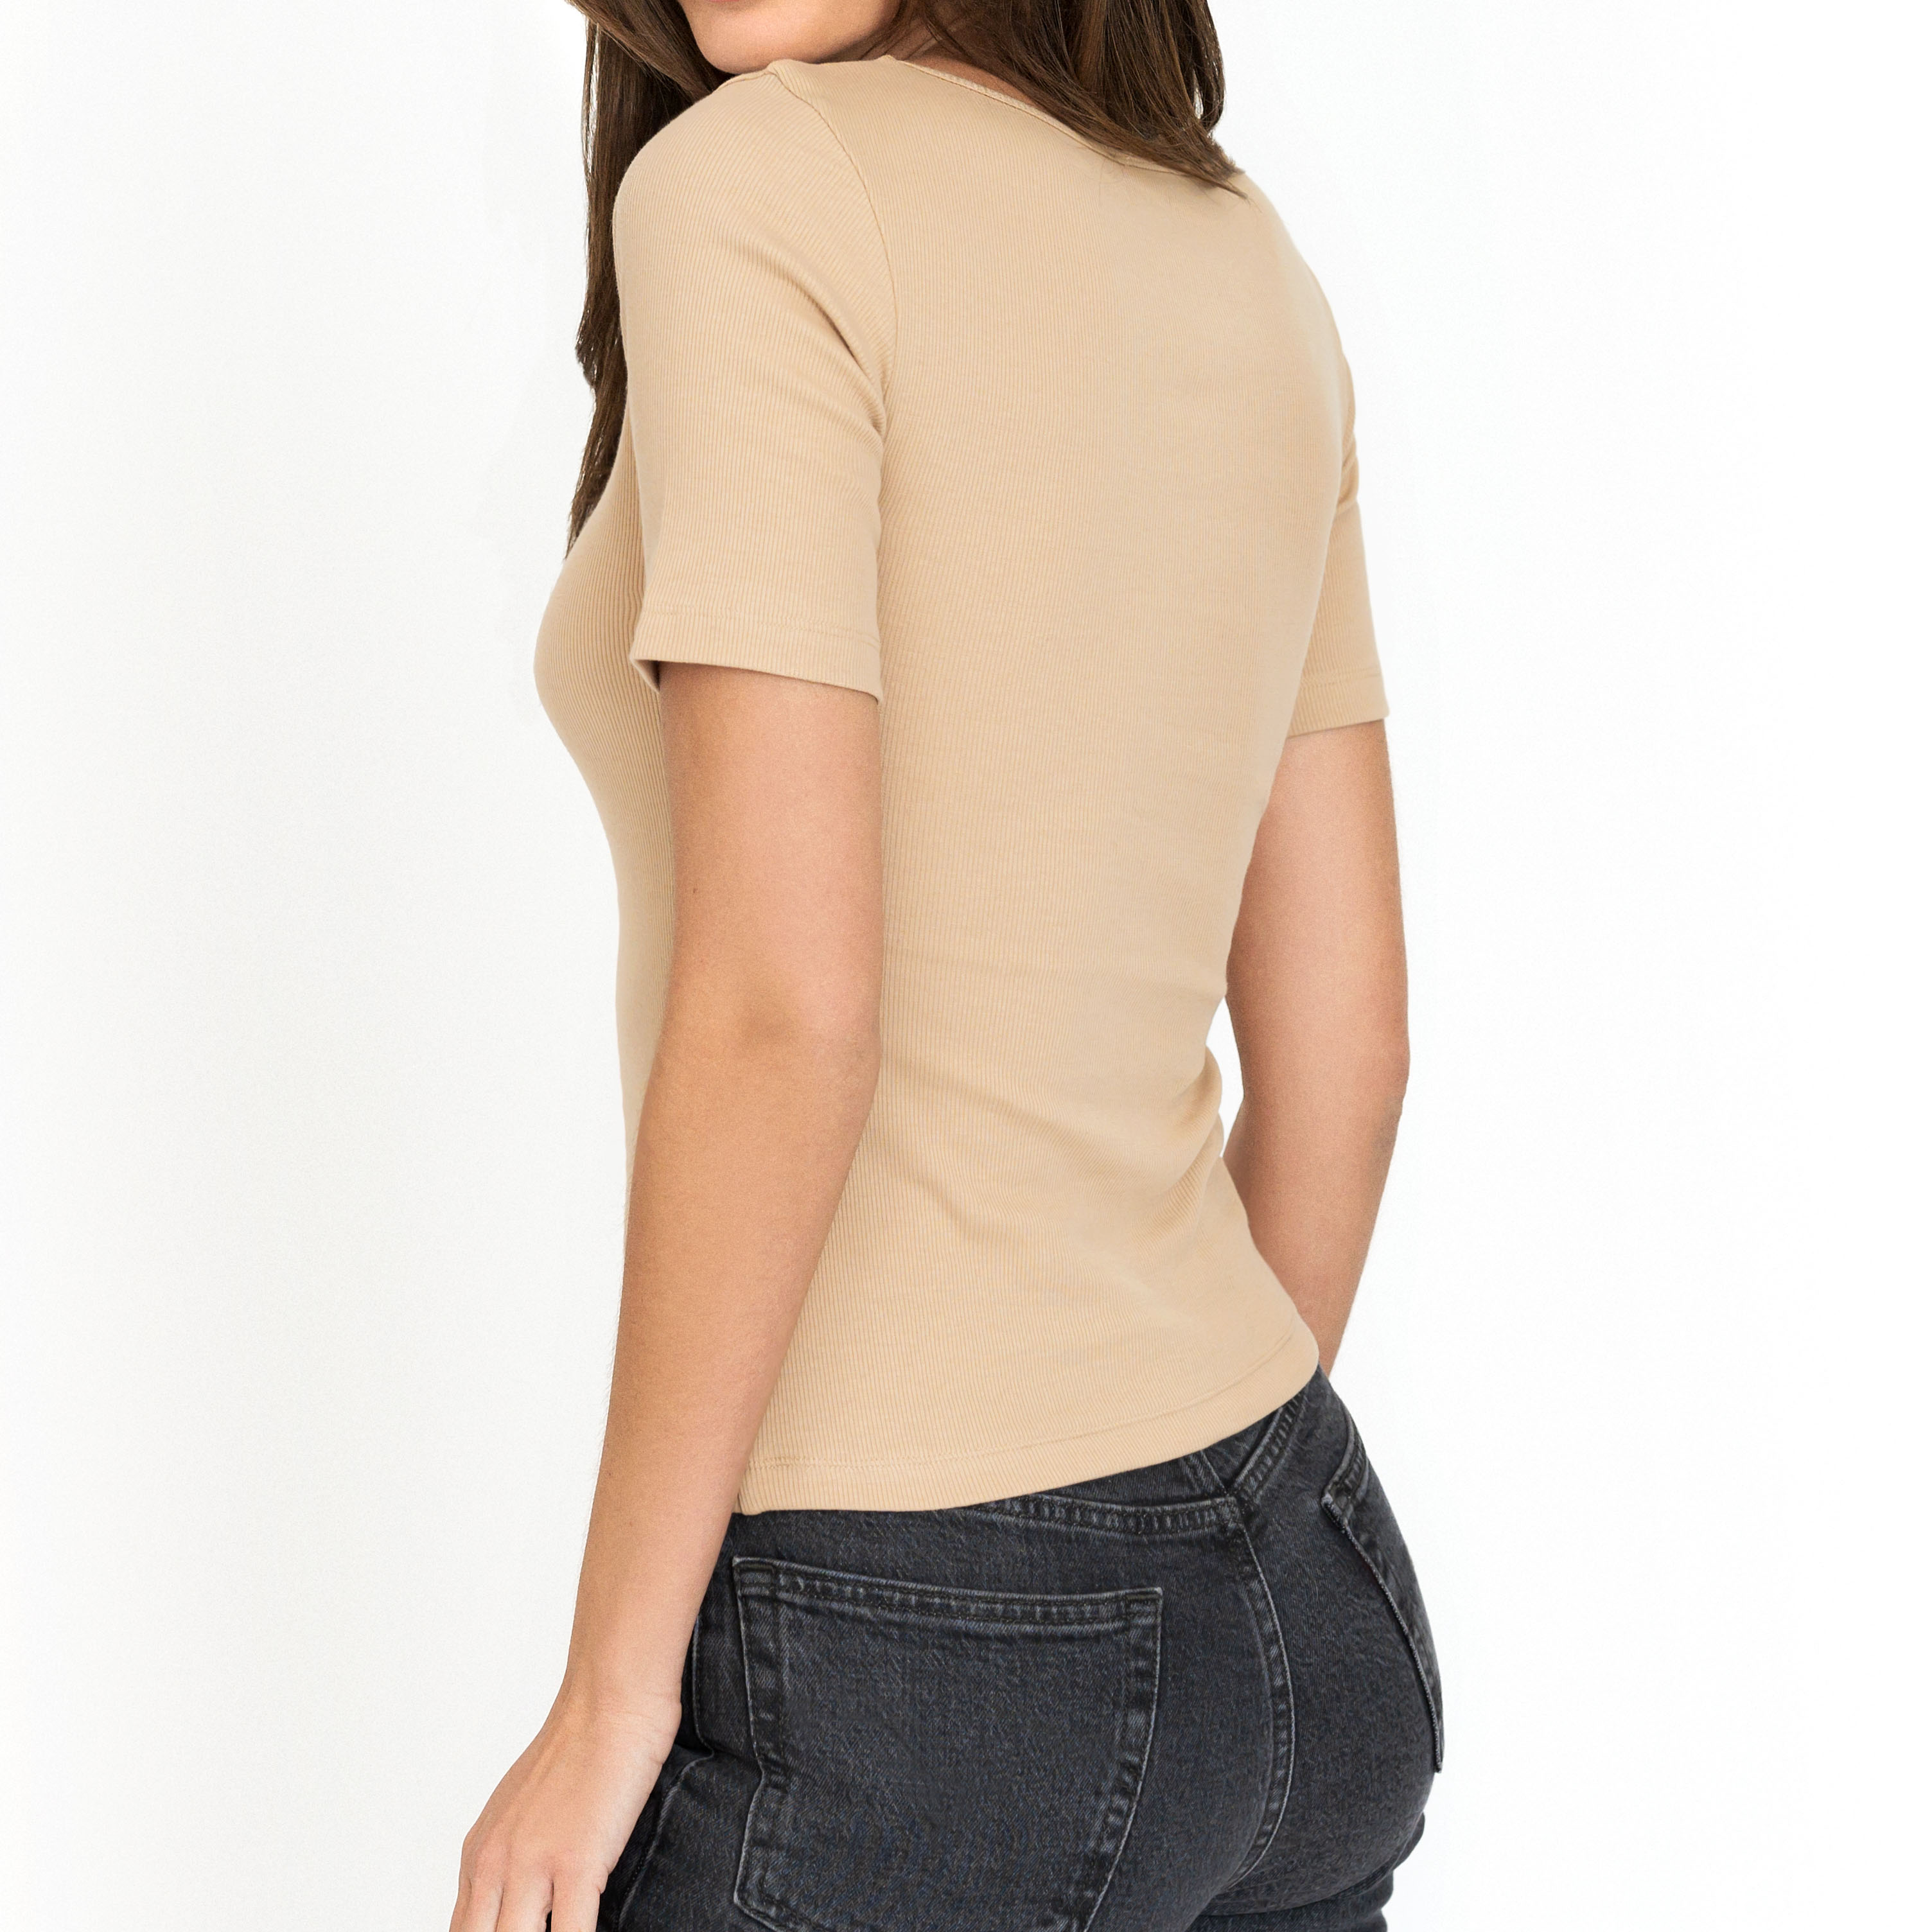 633-05_T-shirt_ribbed_beige_3